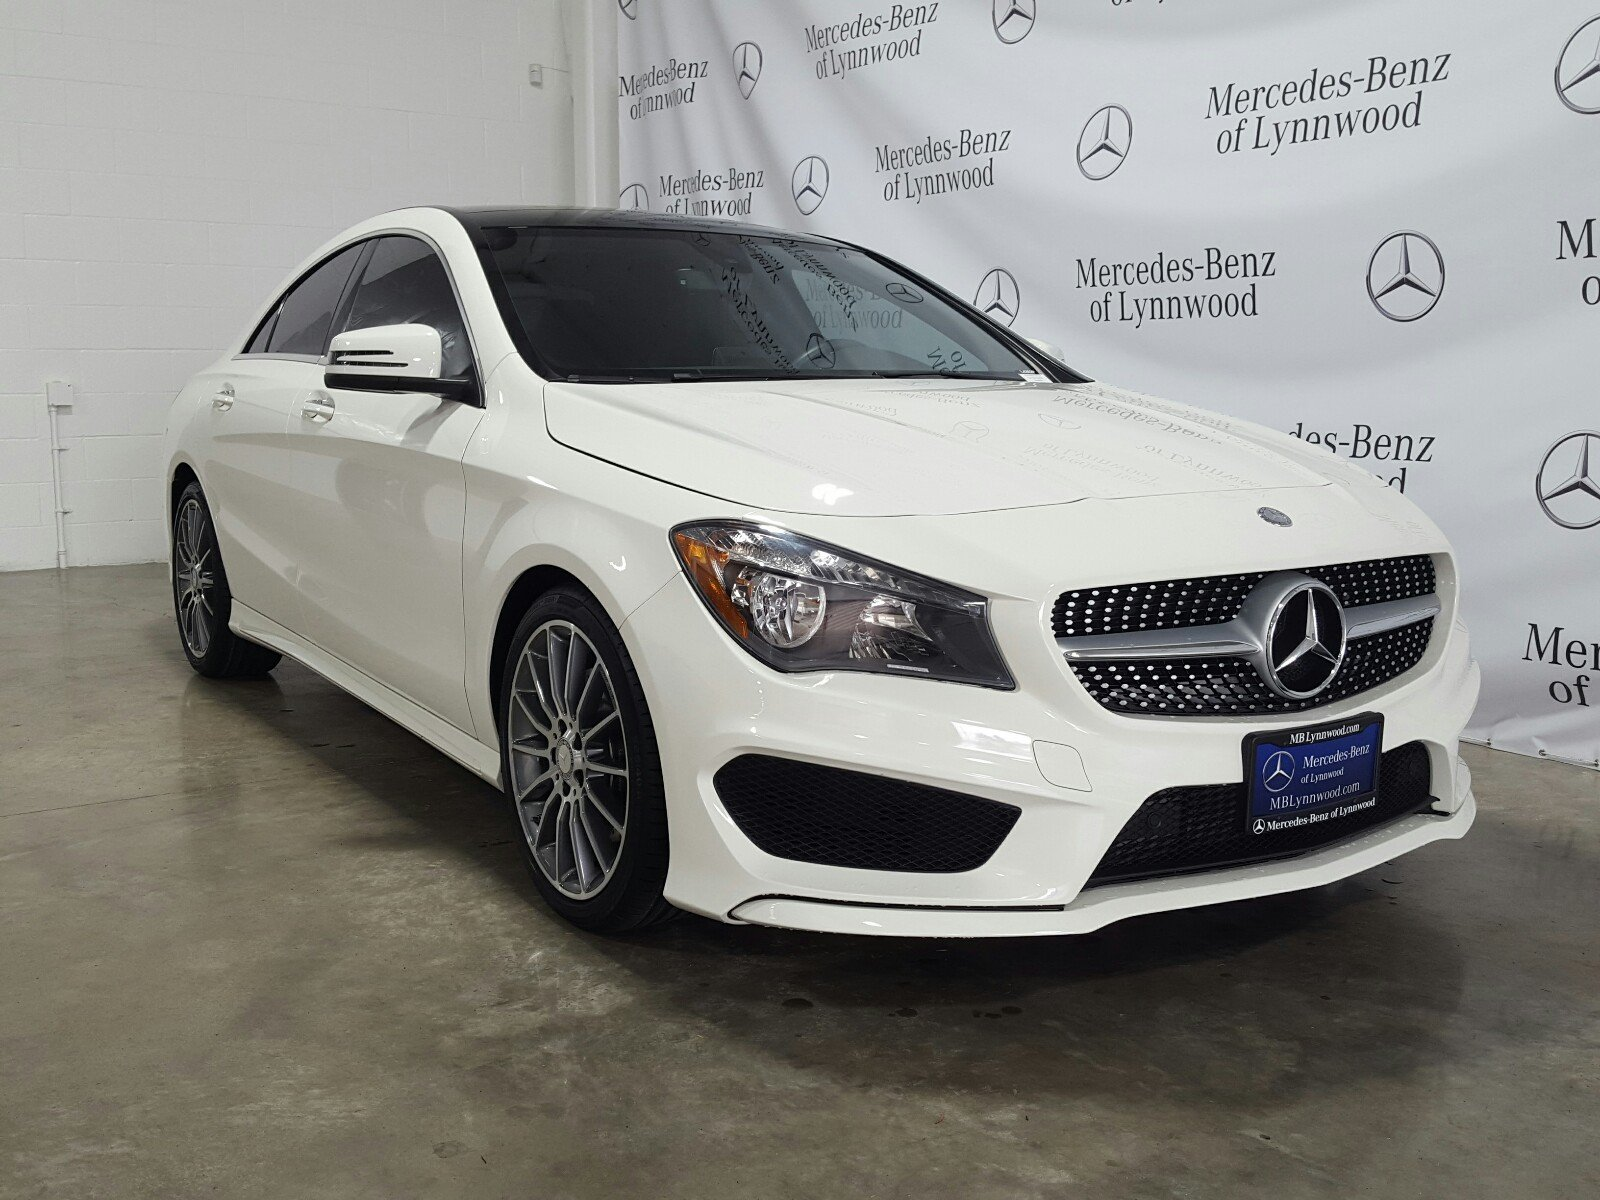 Certified Pre Owned 2016 Mercedes Benz CLA CLA 250 4MATIC Coupe in